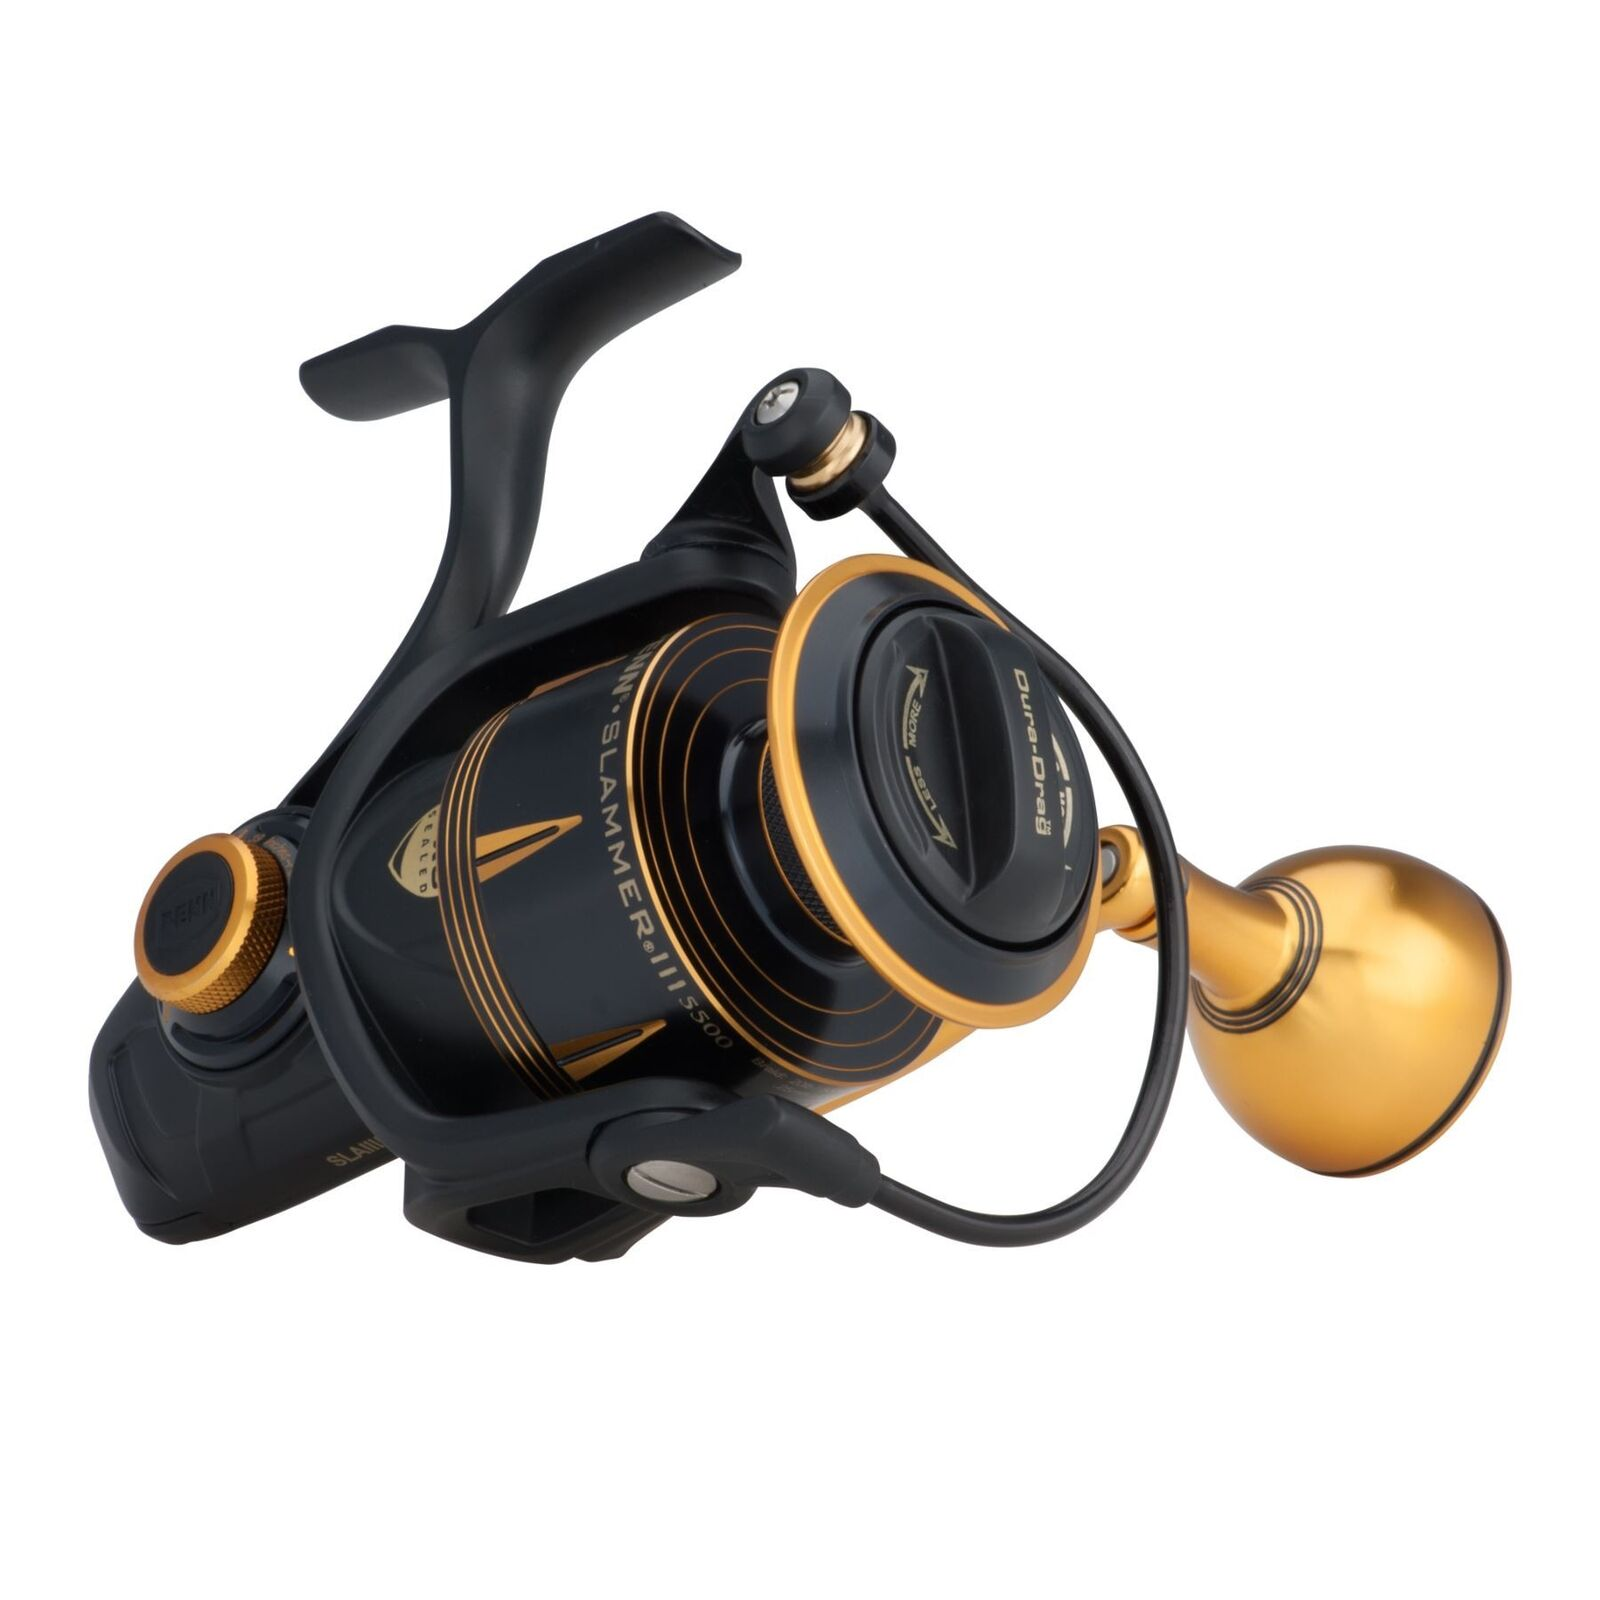 Penn Slammer III 3500   Heavy Duty Spinning  Fishing Reel  will make you satisfied